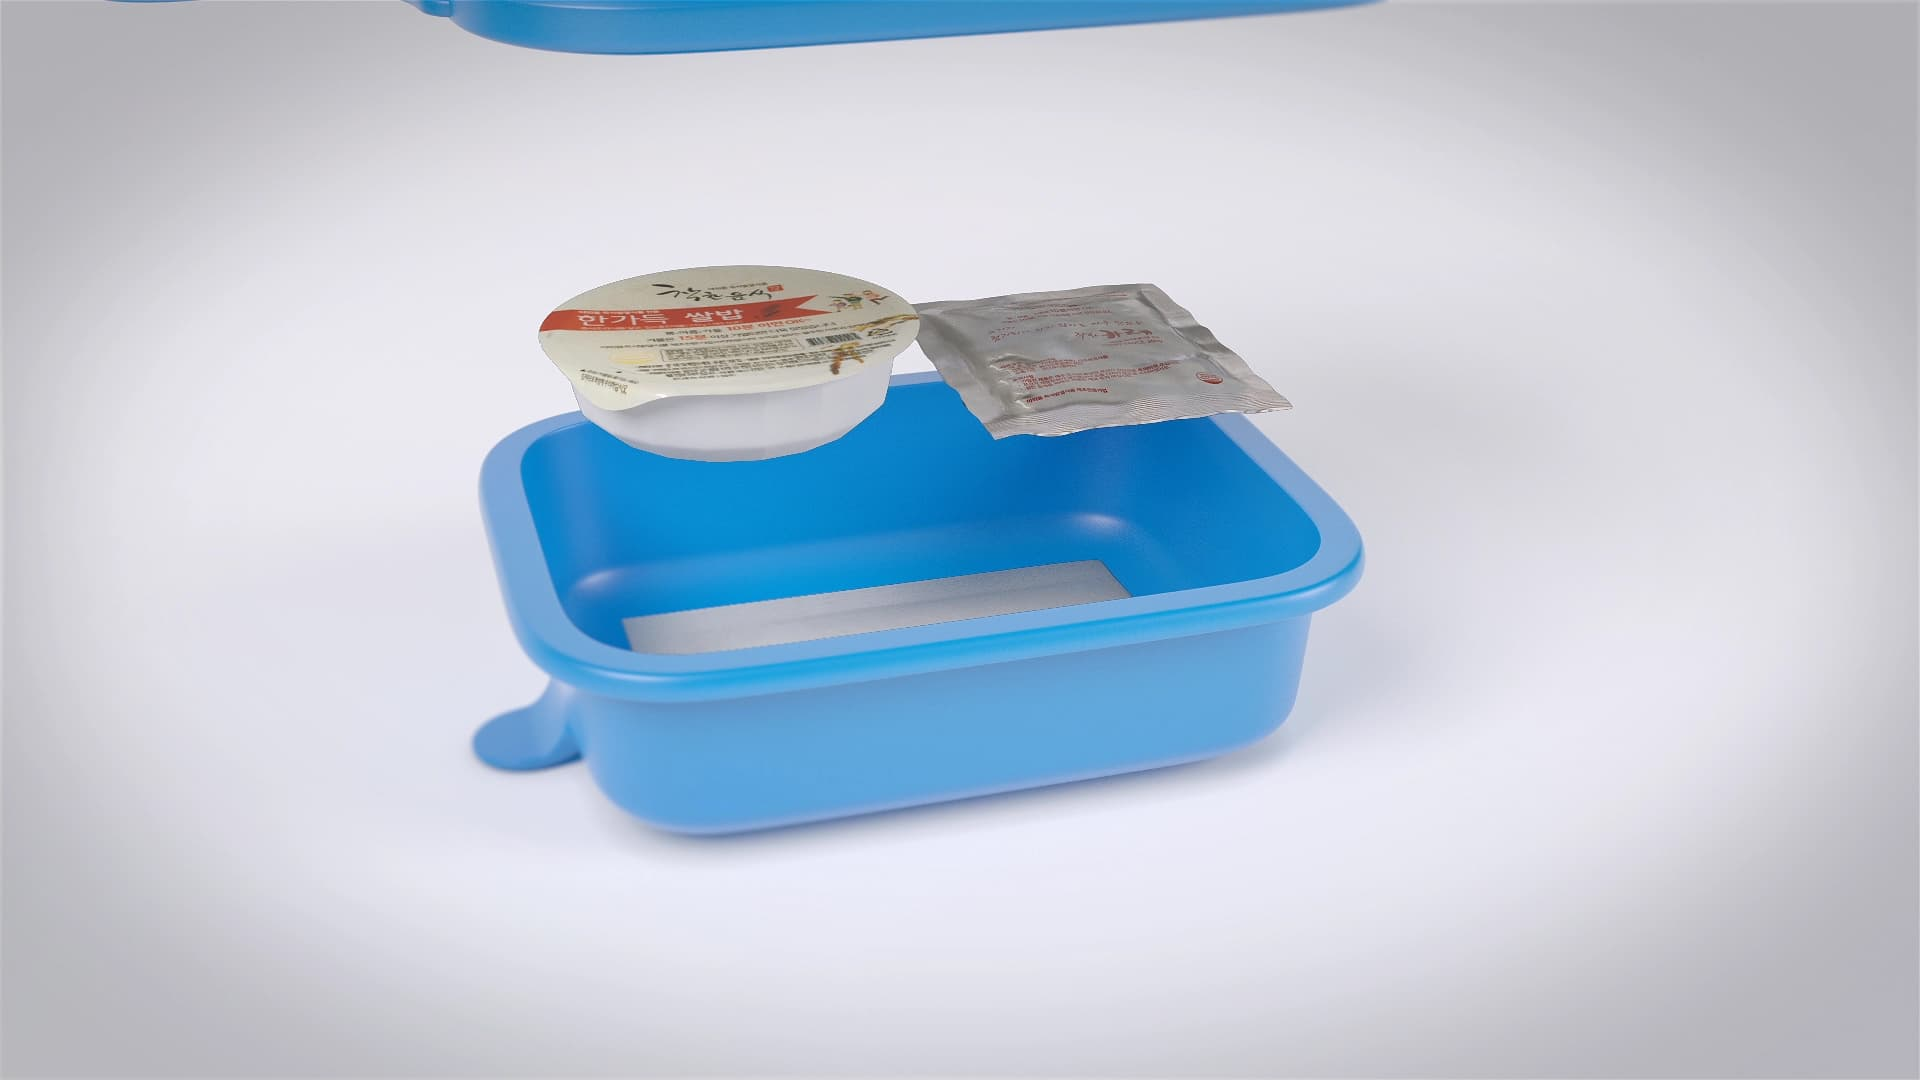 Outdoor Cookware _ cook container _ food container _ Camping